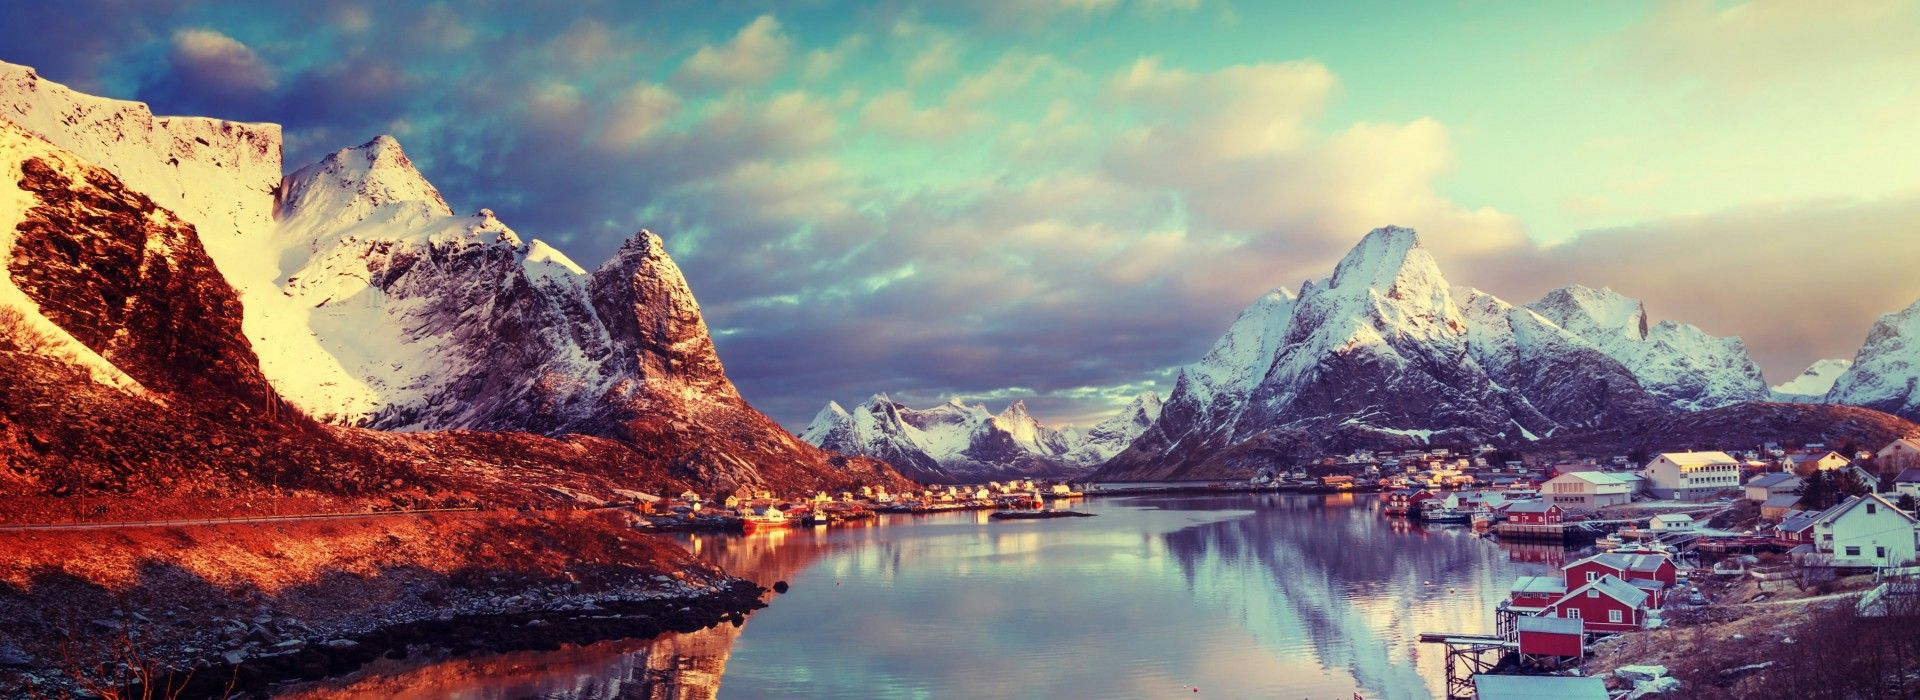 Sightseeing, attractions, culture and history Tours in Tromsø